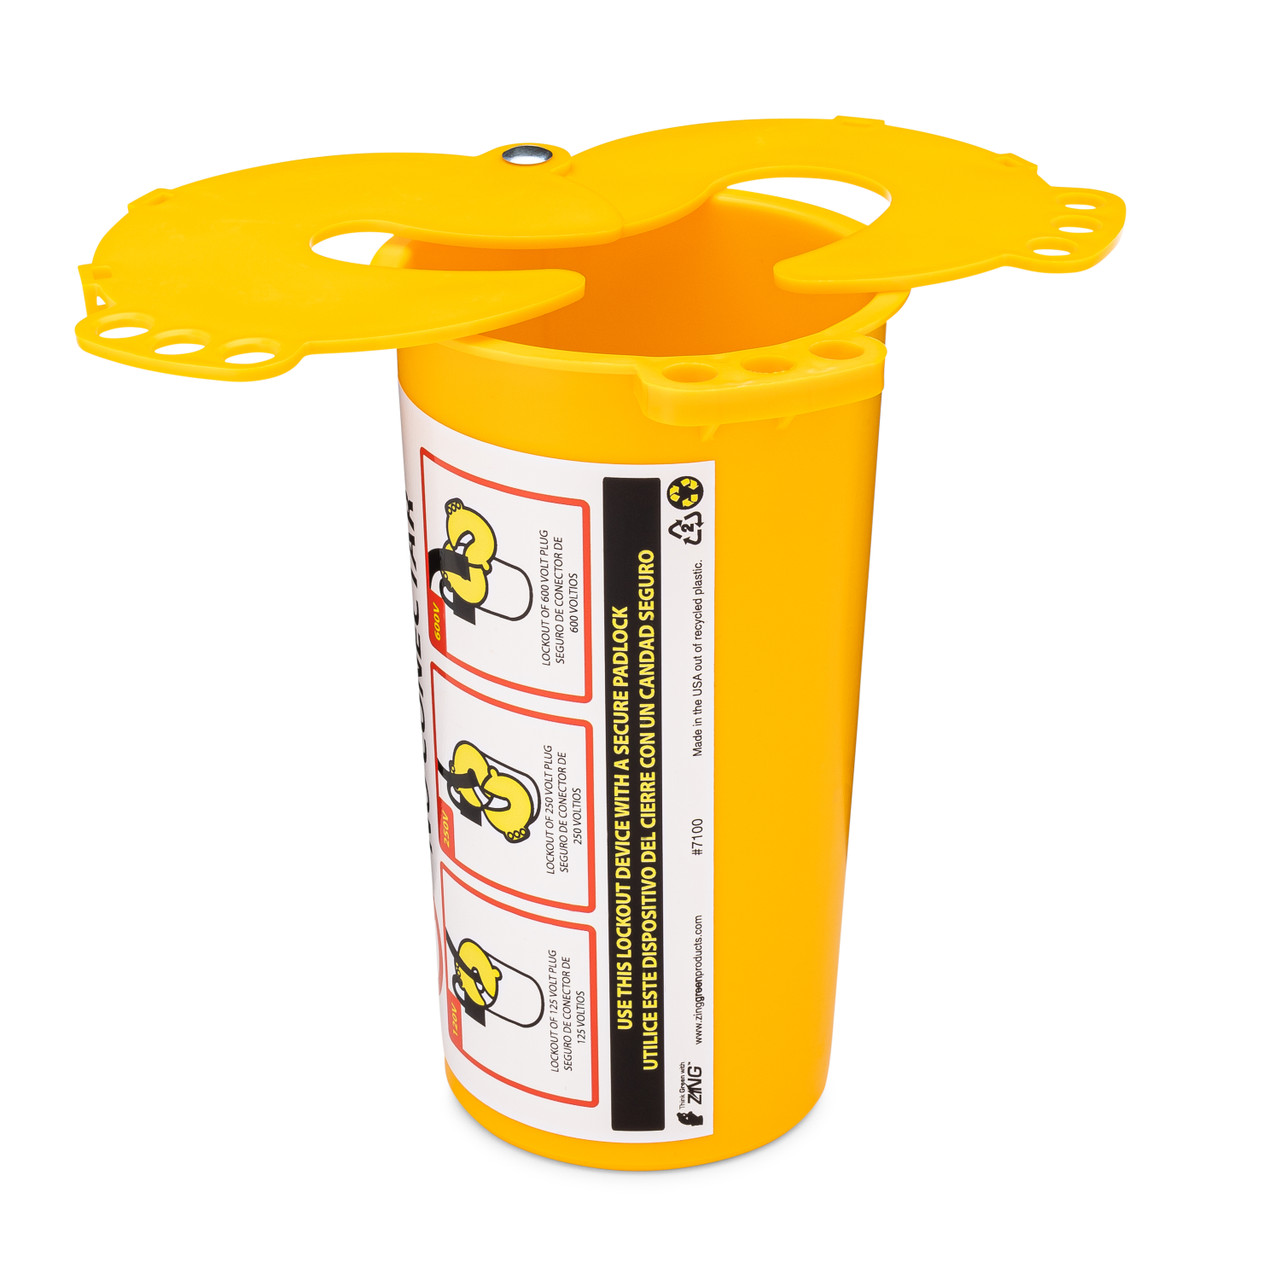 ZING 7100 RecycLockout Lockout Tagout, Large Plug Lockout, Recycled Plastic